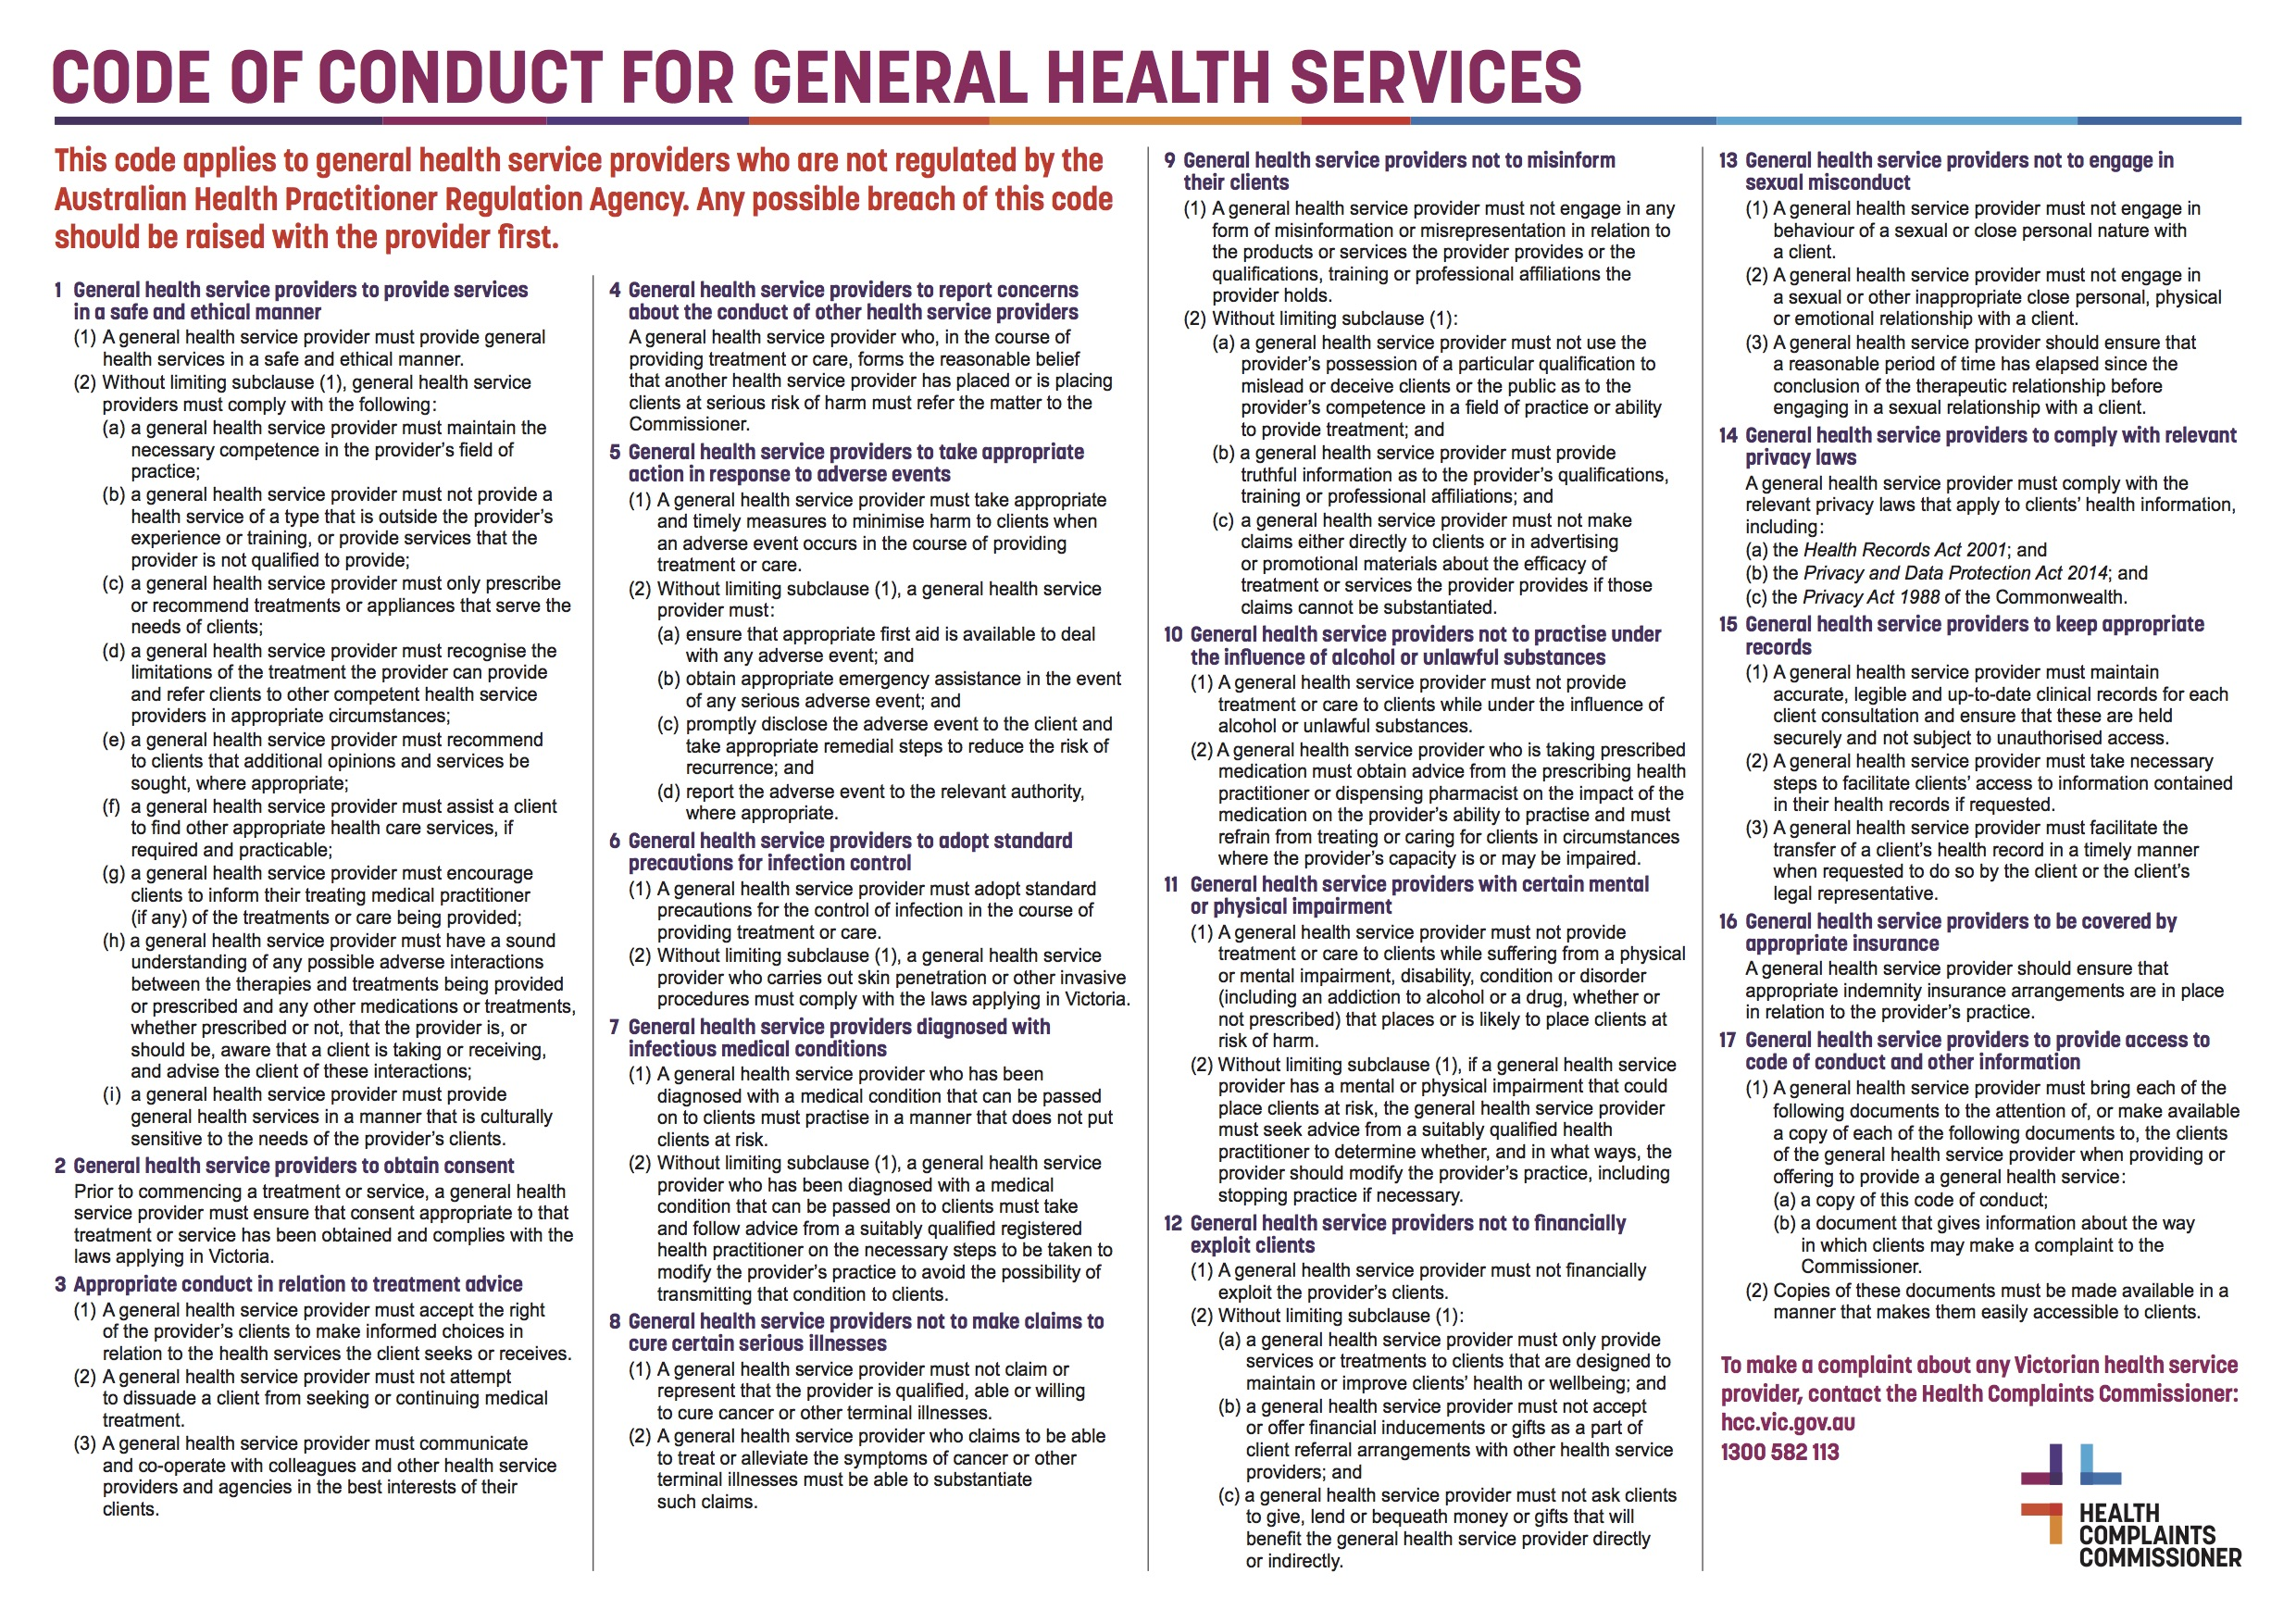 code_of_conduct_full_text_a3_poster.jpg